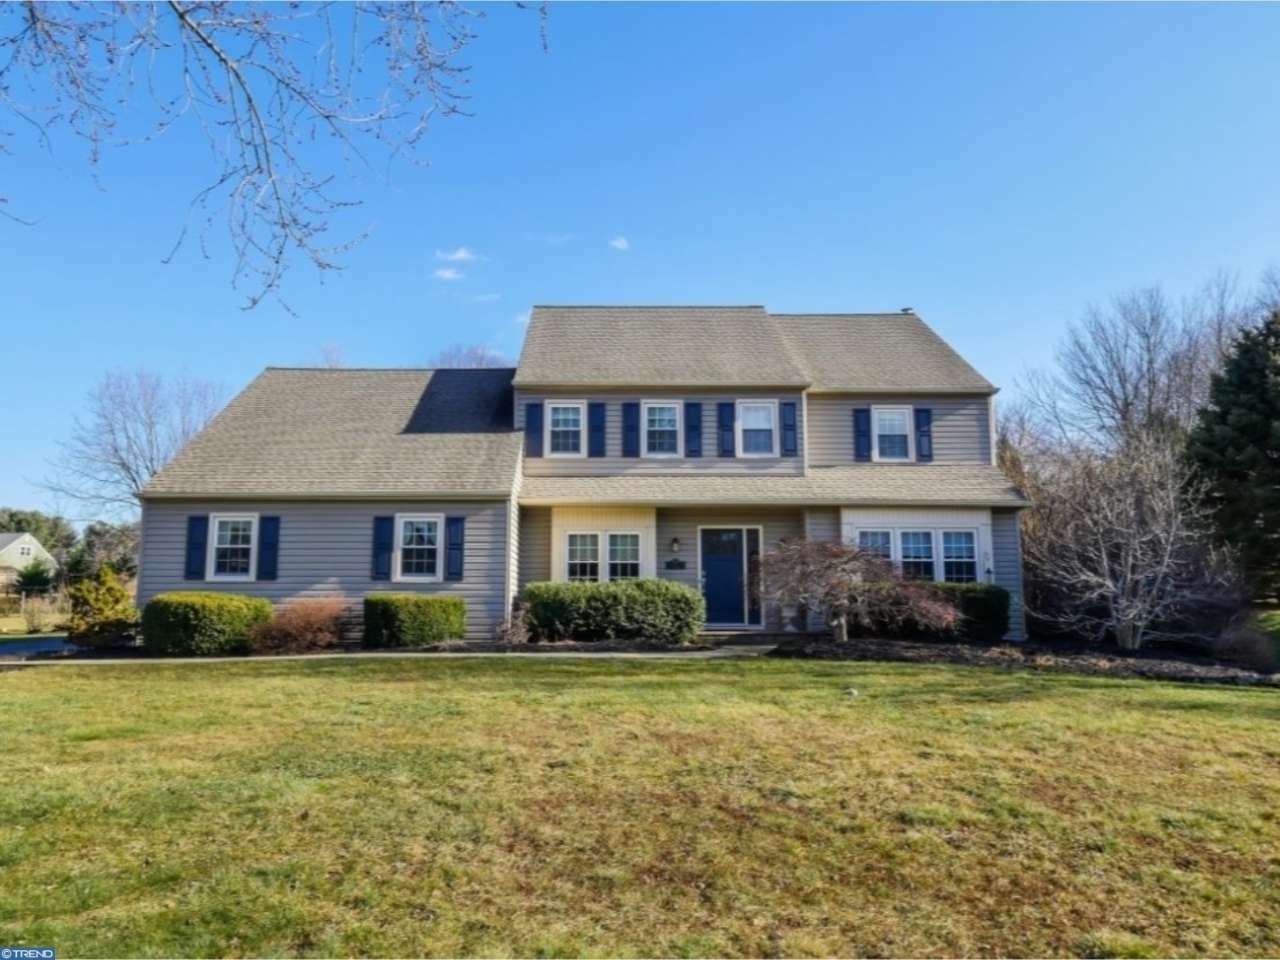 65 John Dyer Way, Doylestown, PA - USA (photo 1)